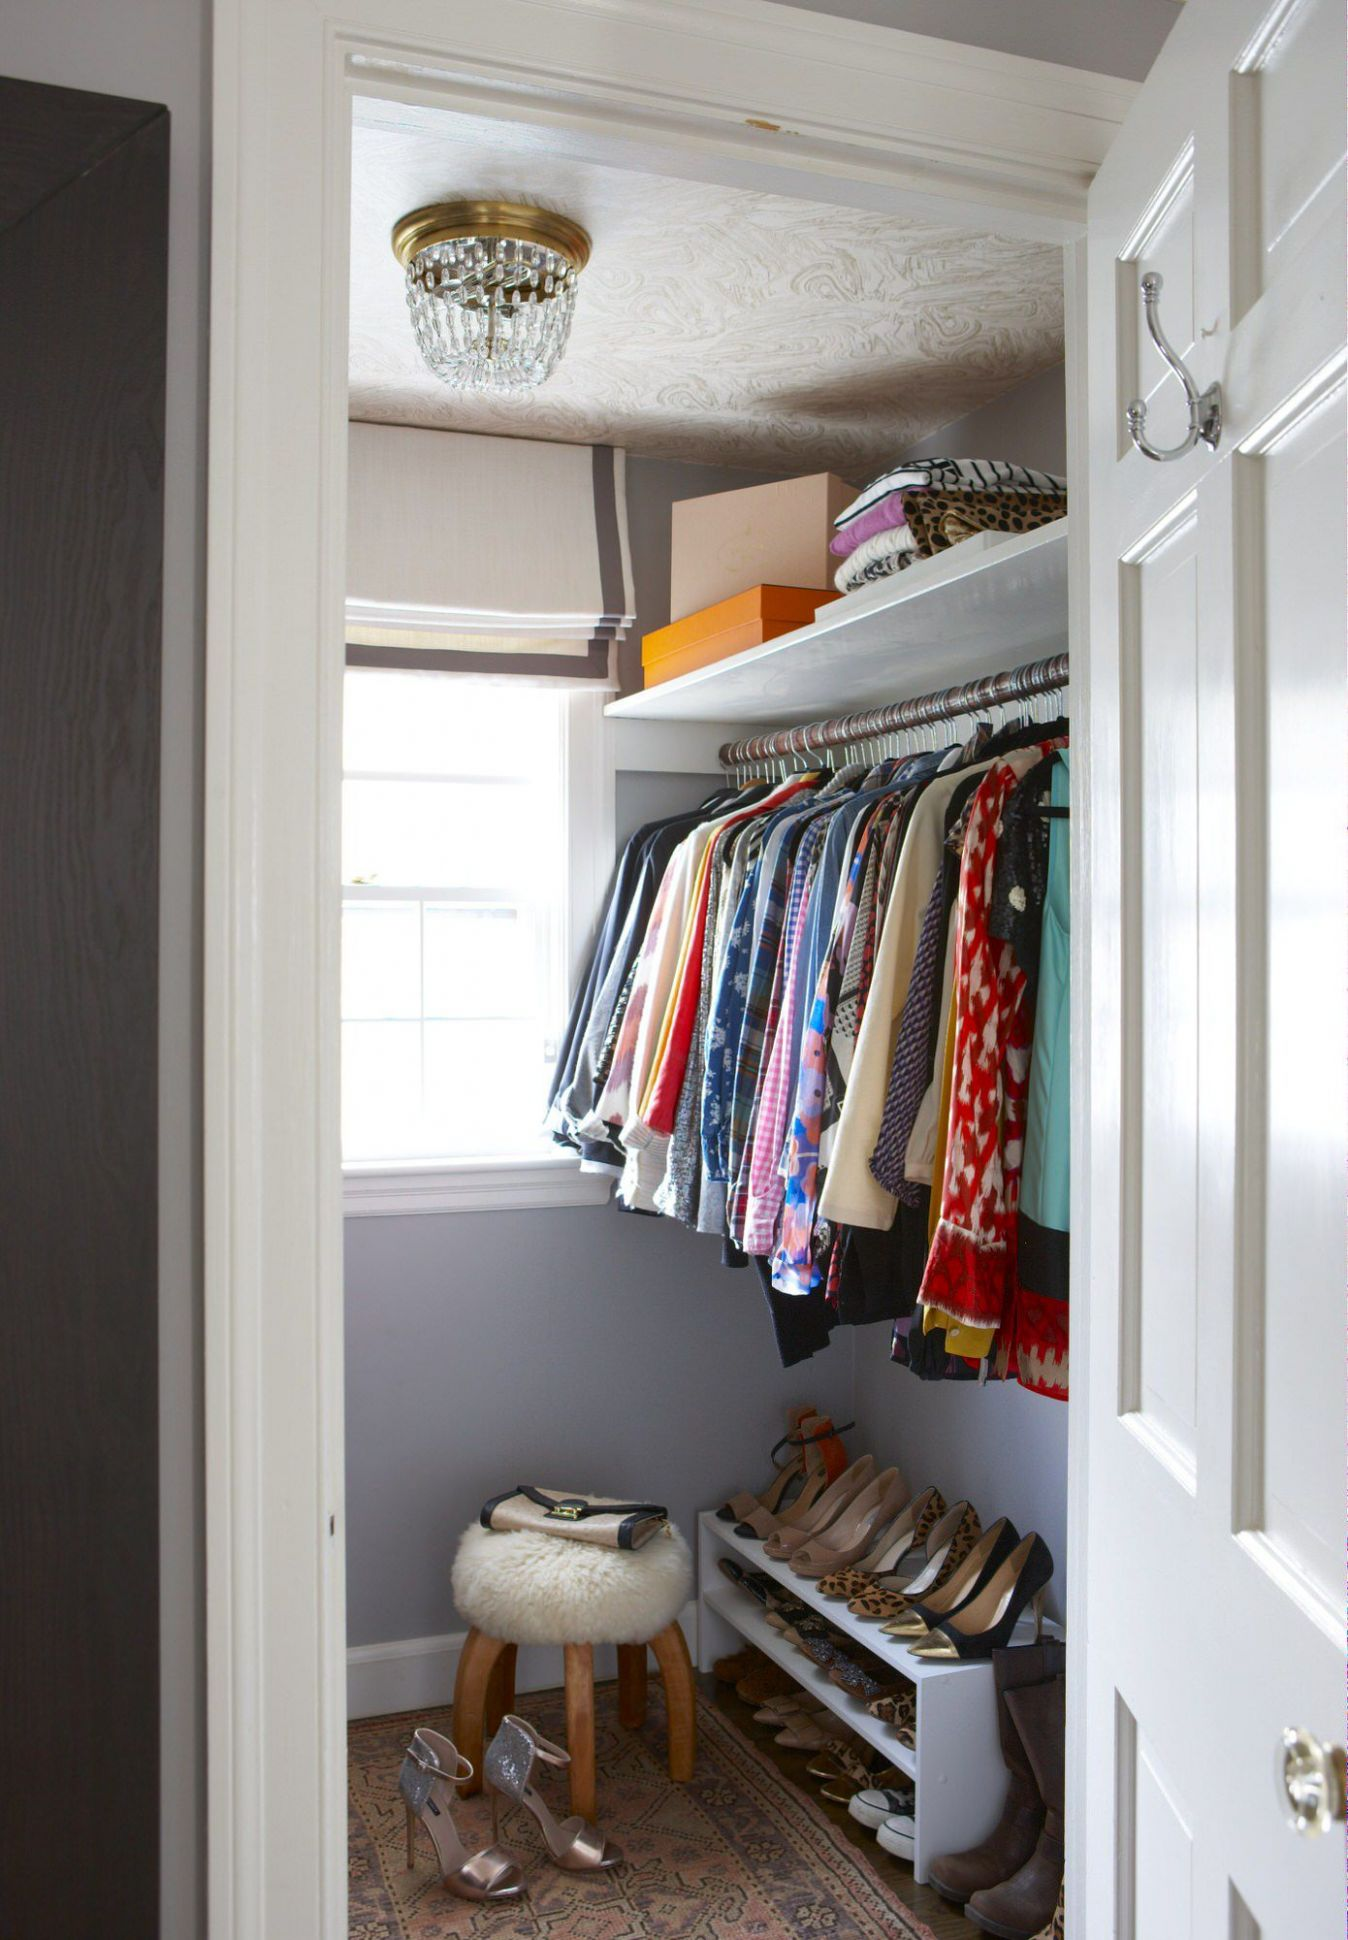 12 Best Small Walk-in Closet Storage Ideas for Bedrooms - closet ideas cheap